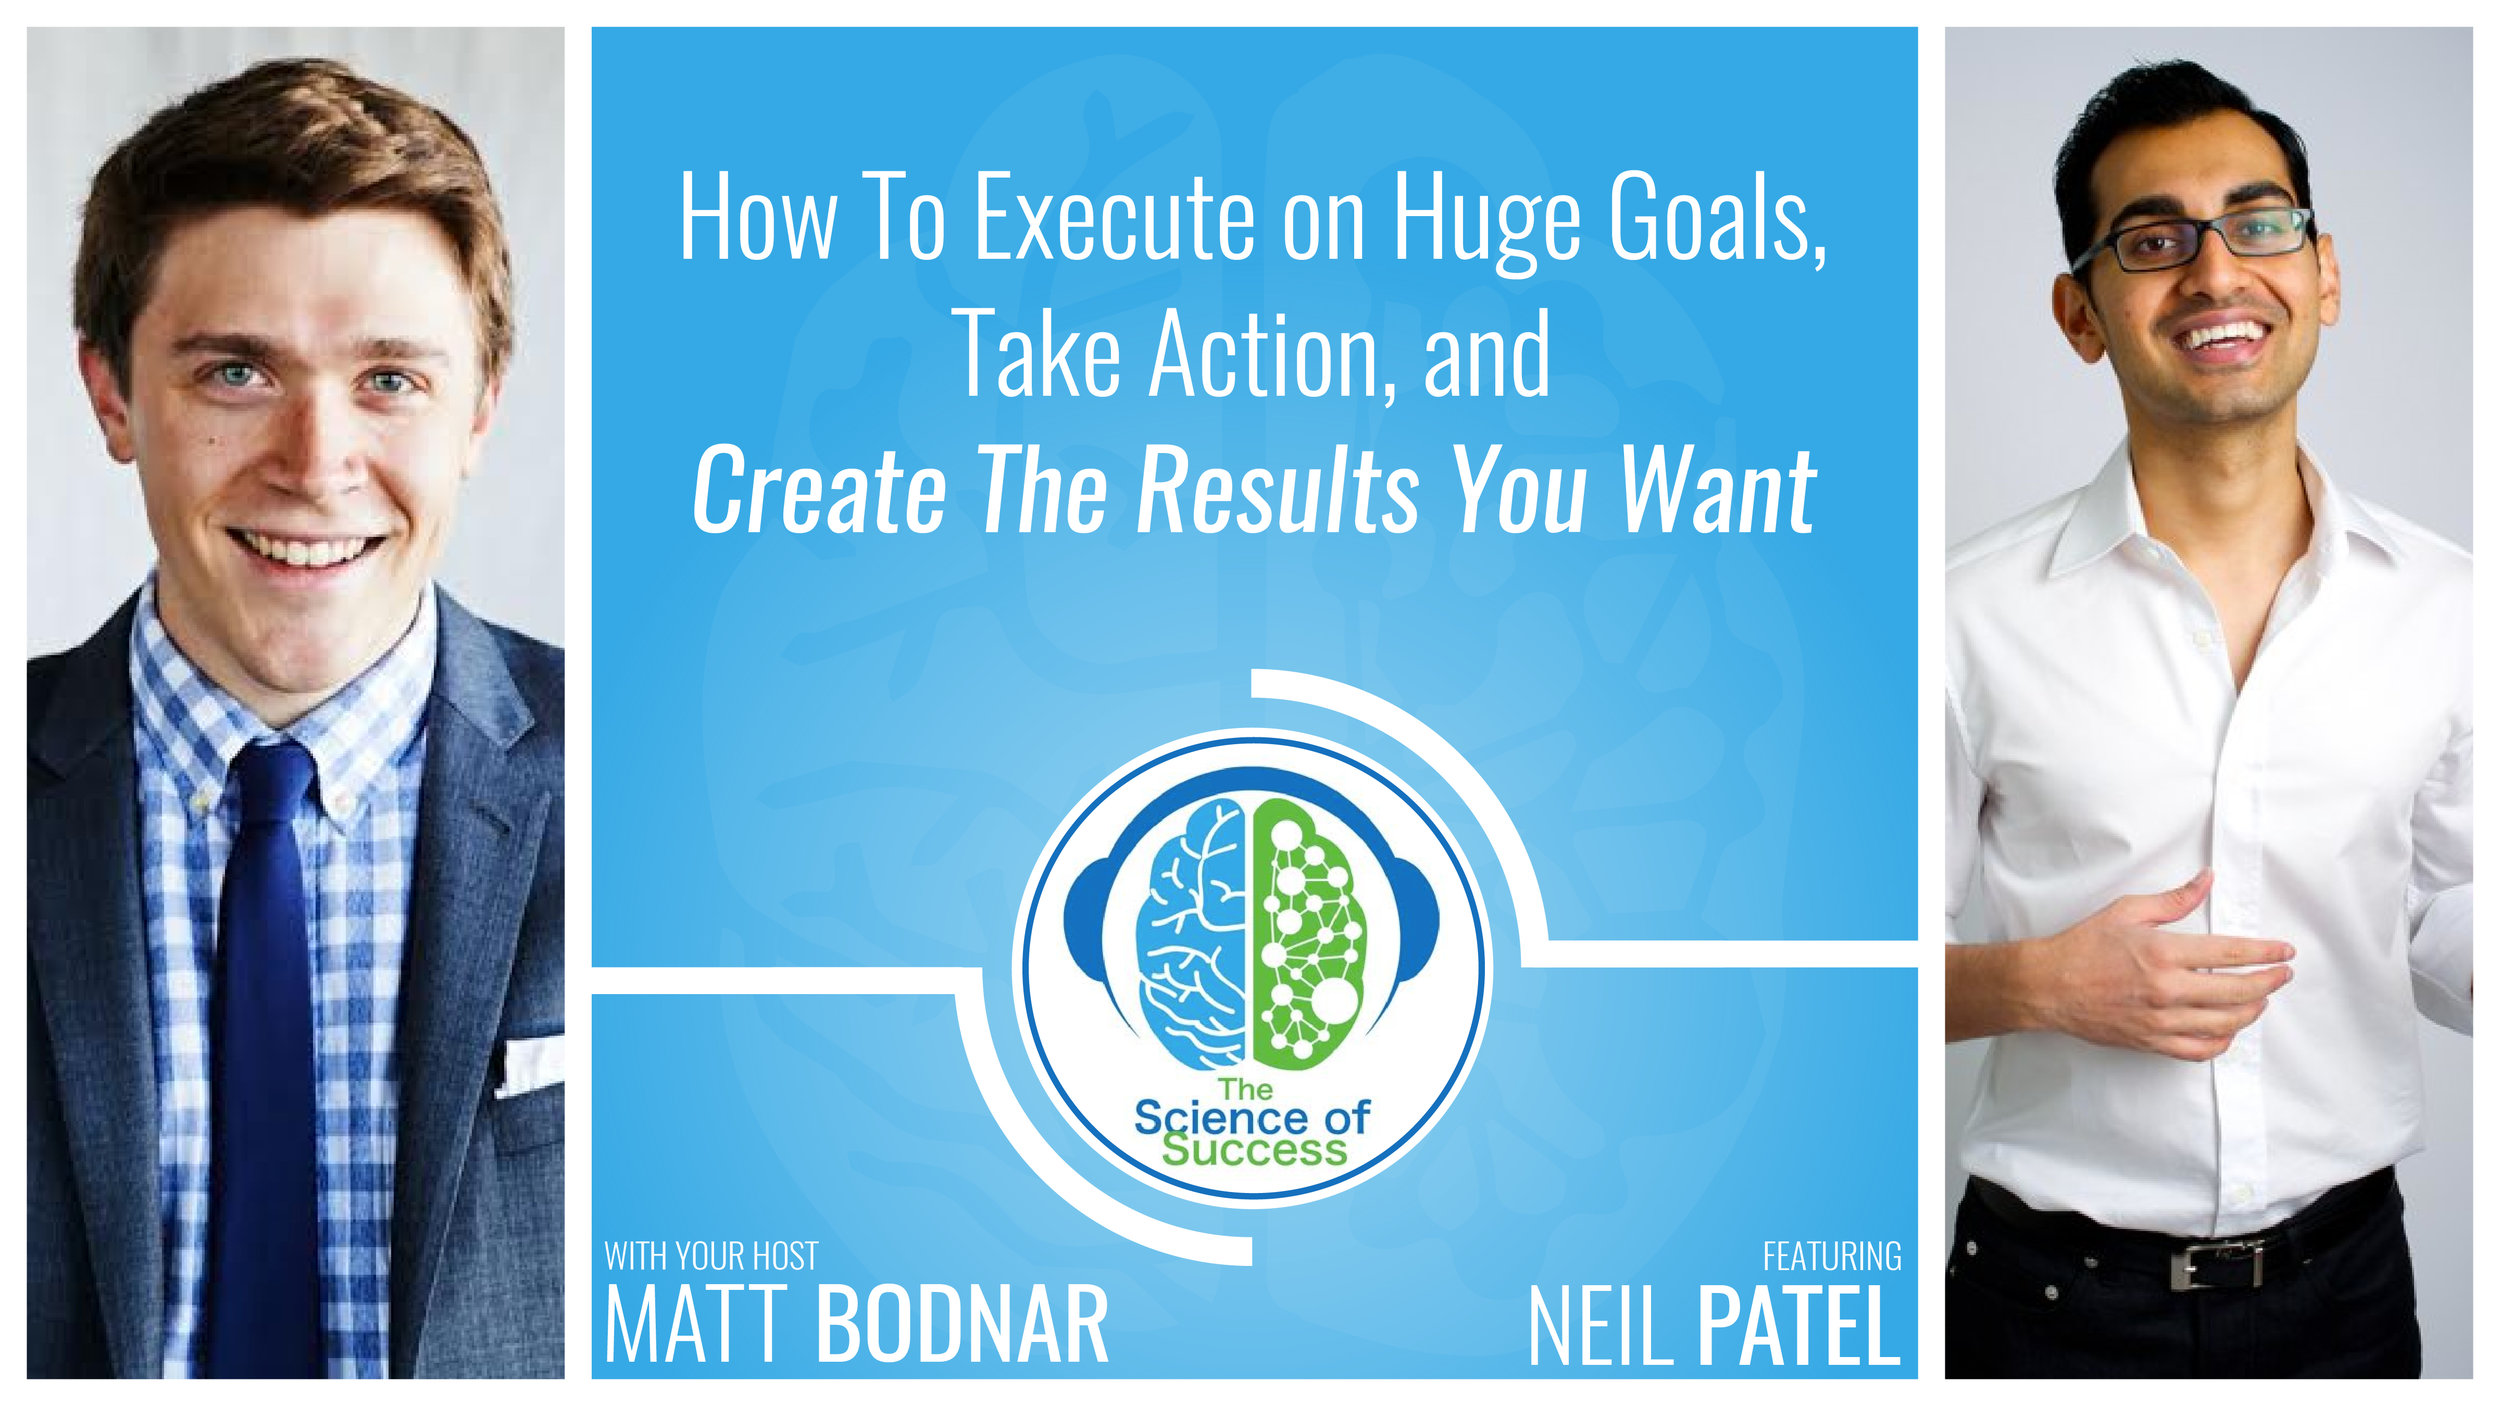 43-How To Execute on Huge Goals, Take Action, and Create The Results You Want with Neil Patel-01.jpg